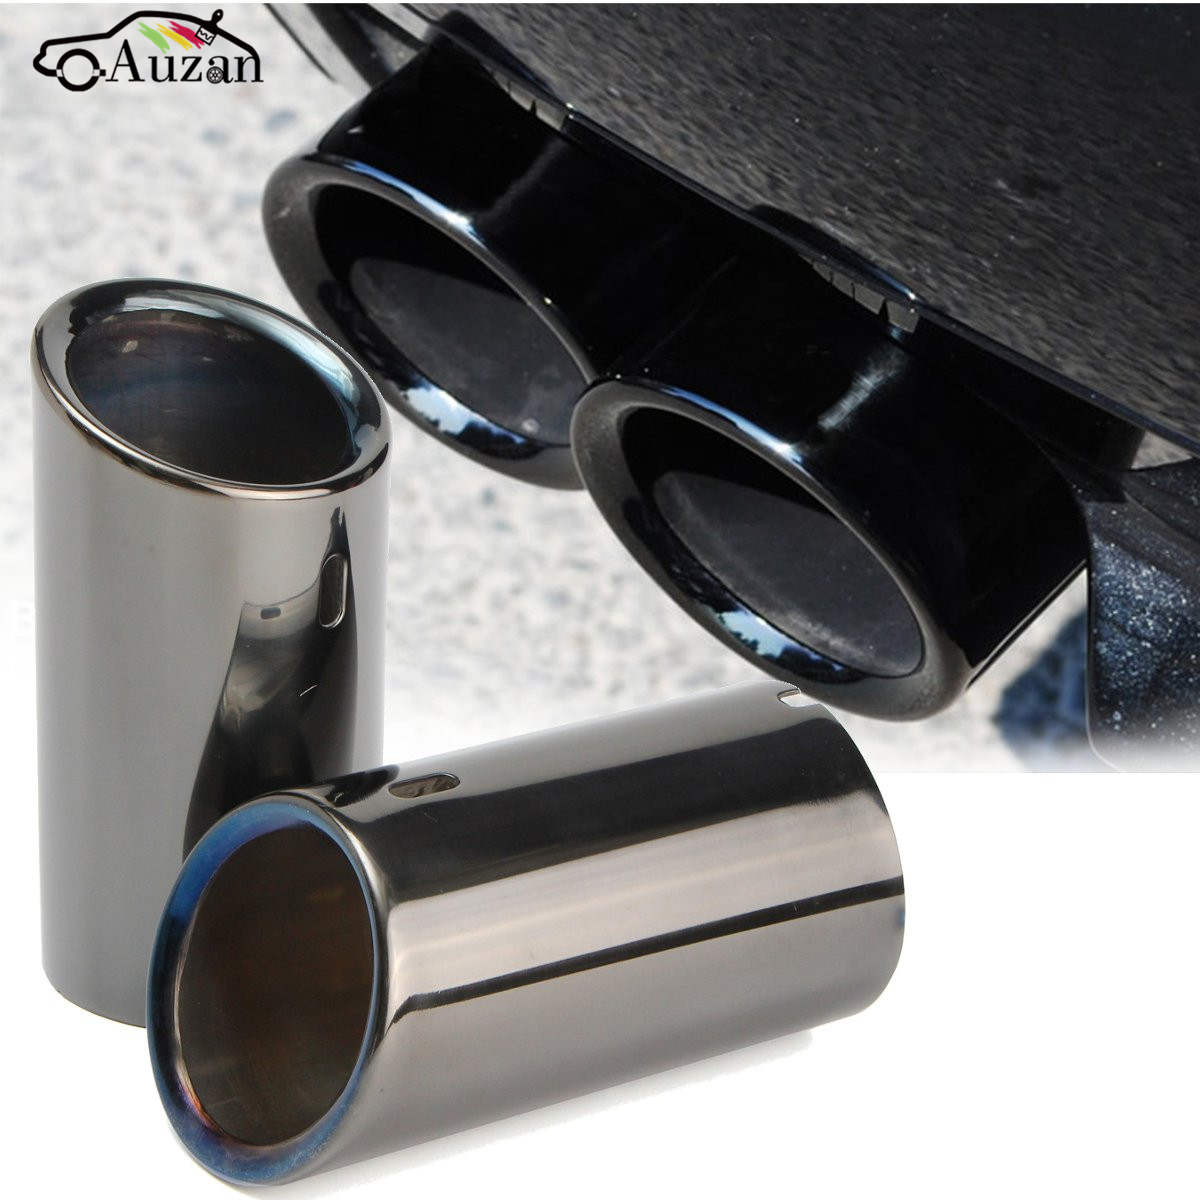 Pair Car Tail Exhaust Tip Pipes Titanium Black For BMW E90 E92 325 328i 3 Series 2006 - 2010 Stainless SteelPair Car Tail Exhaust Tip Pipes Titanium Black For BMW E90 E92 325 328i 3 Series 2006 - 2010 Stainless Steel